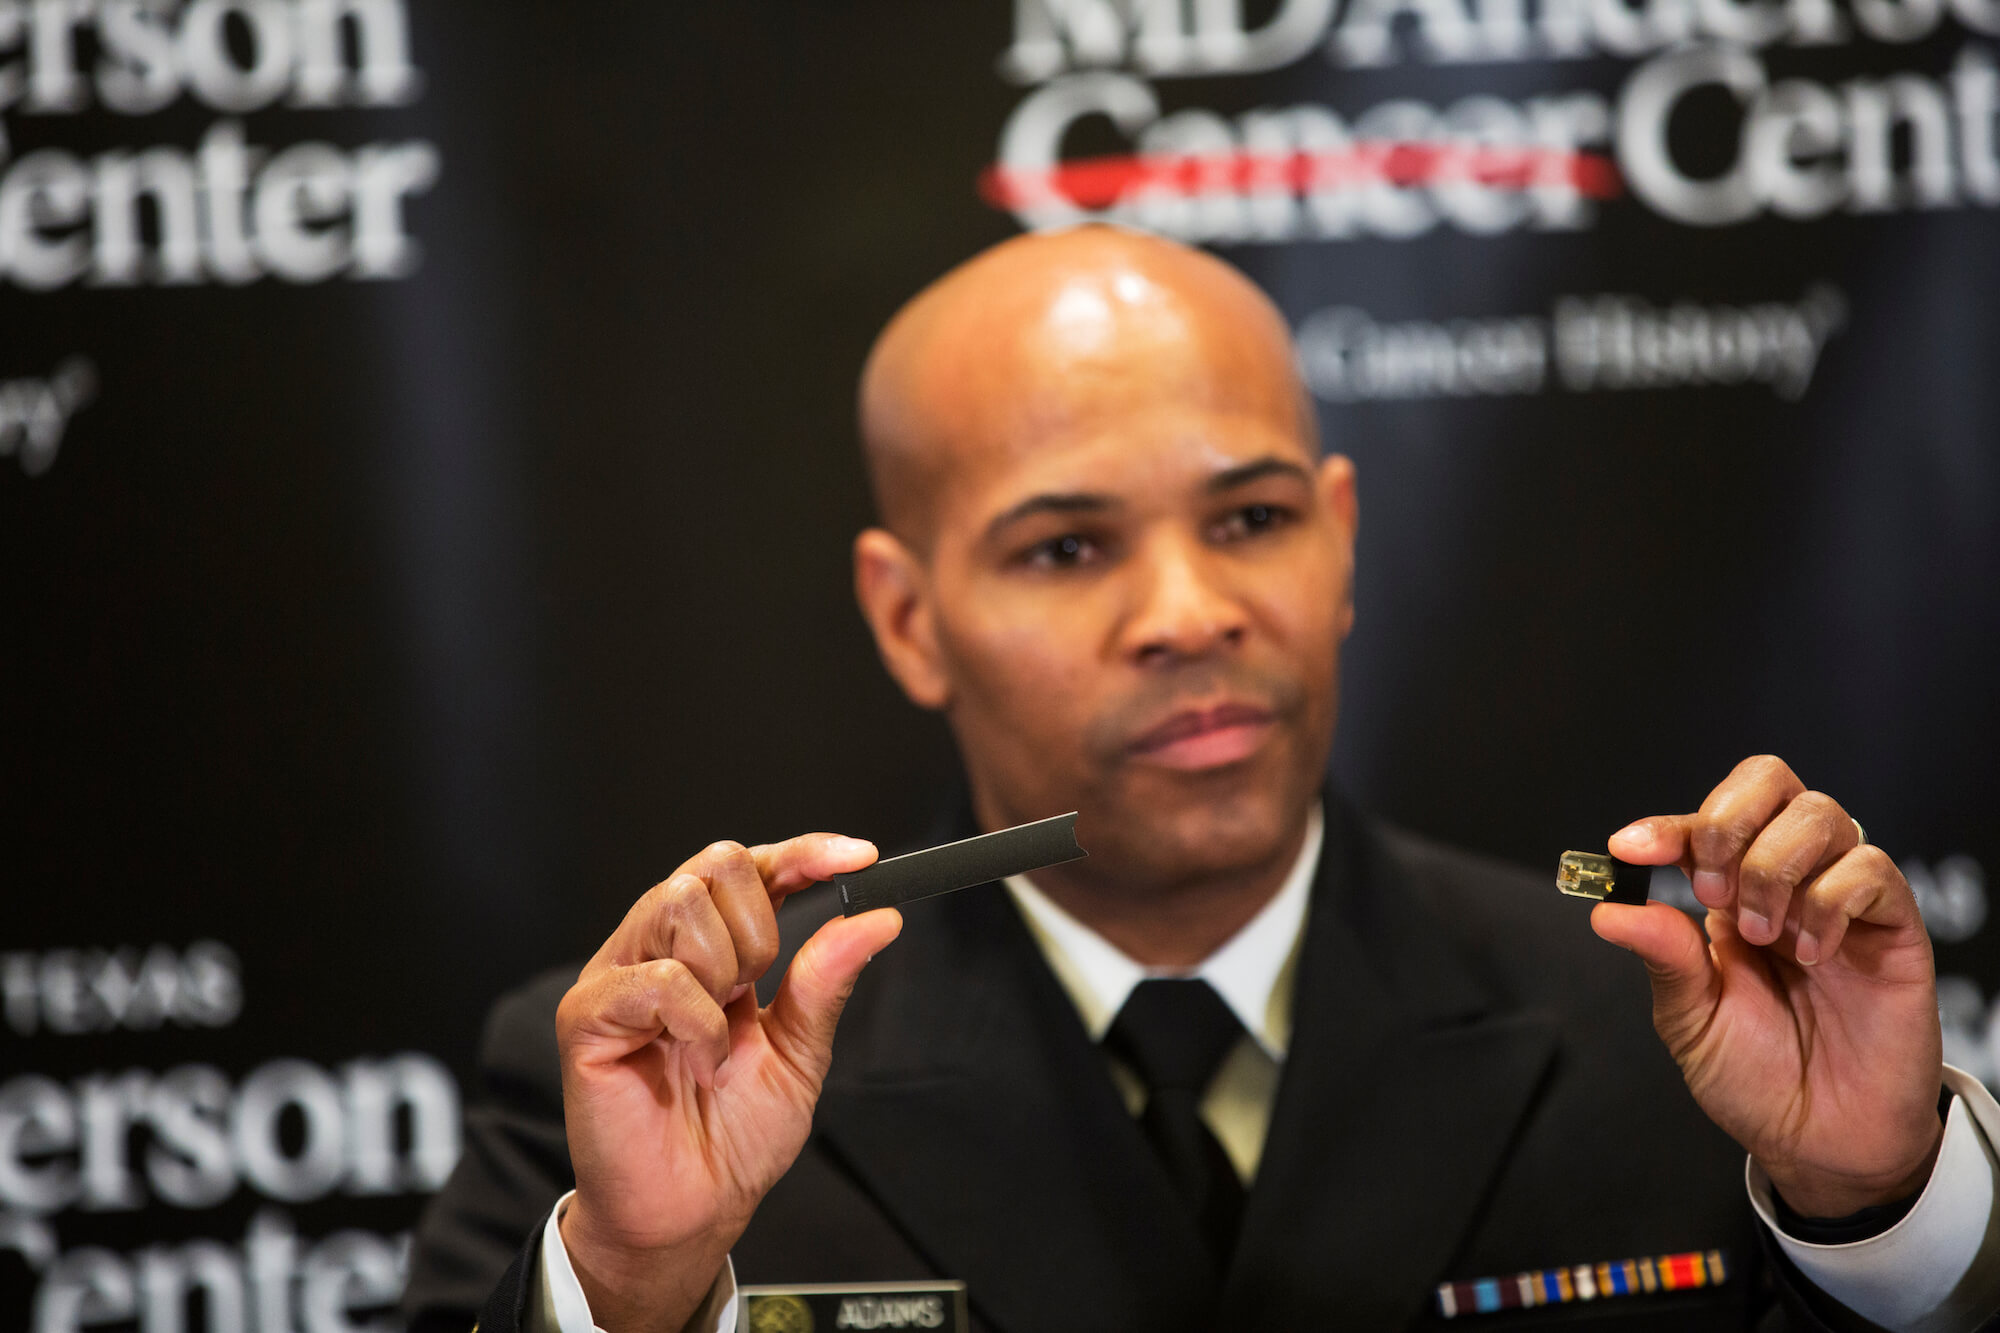 U S Surgeon General Speaks At Md Anderson About The E Cigarette Epidemic Among American Youth Tmc News